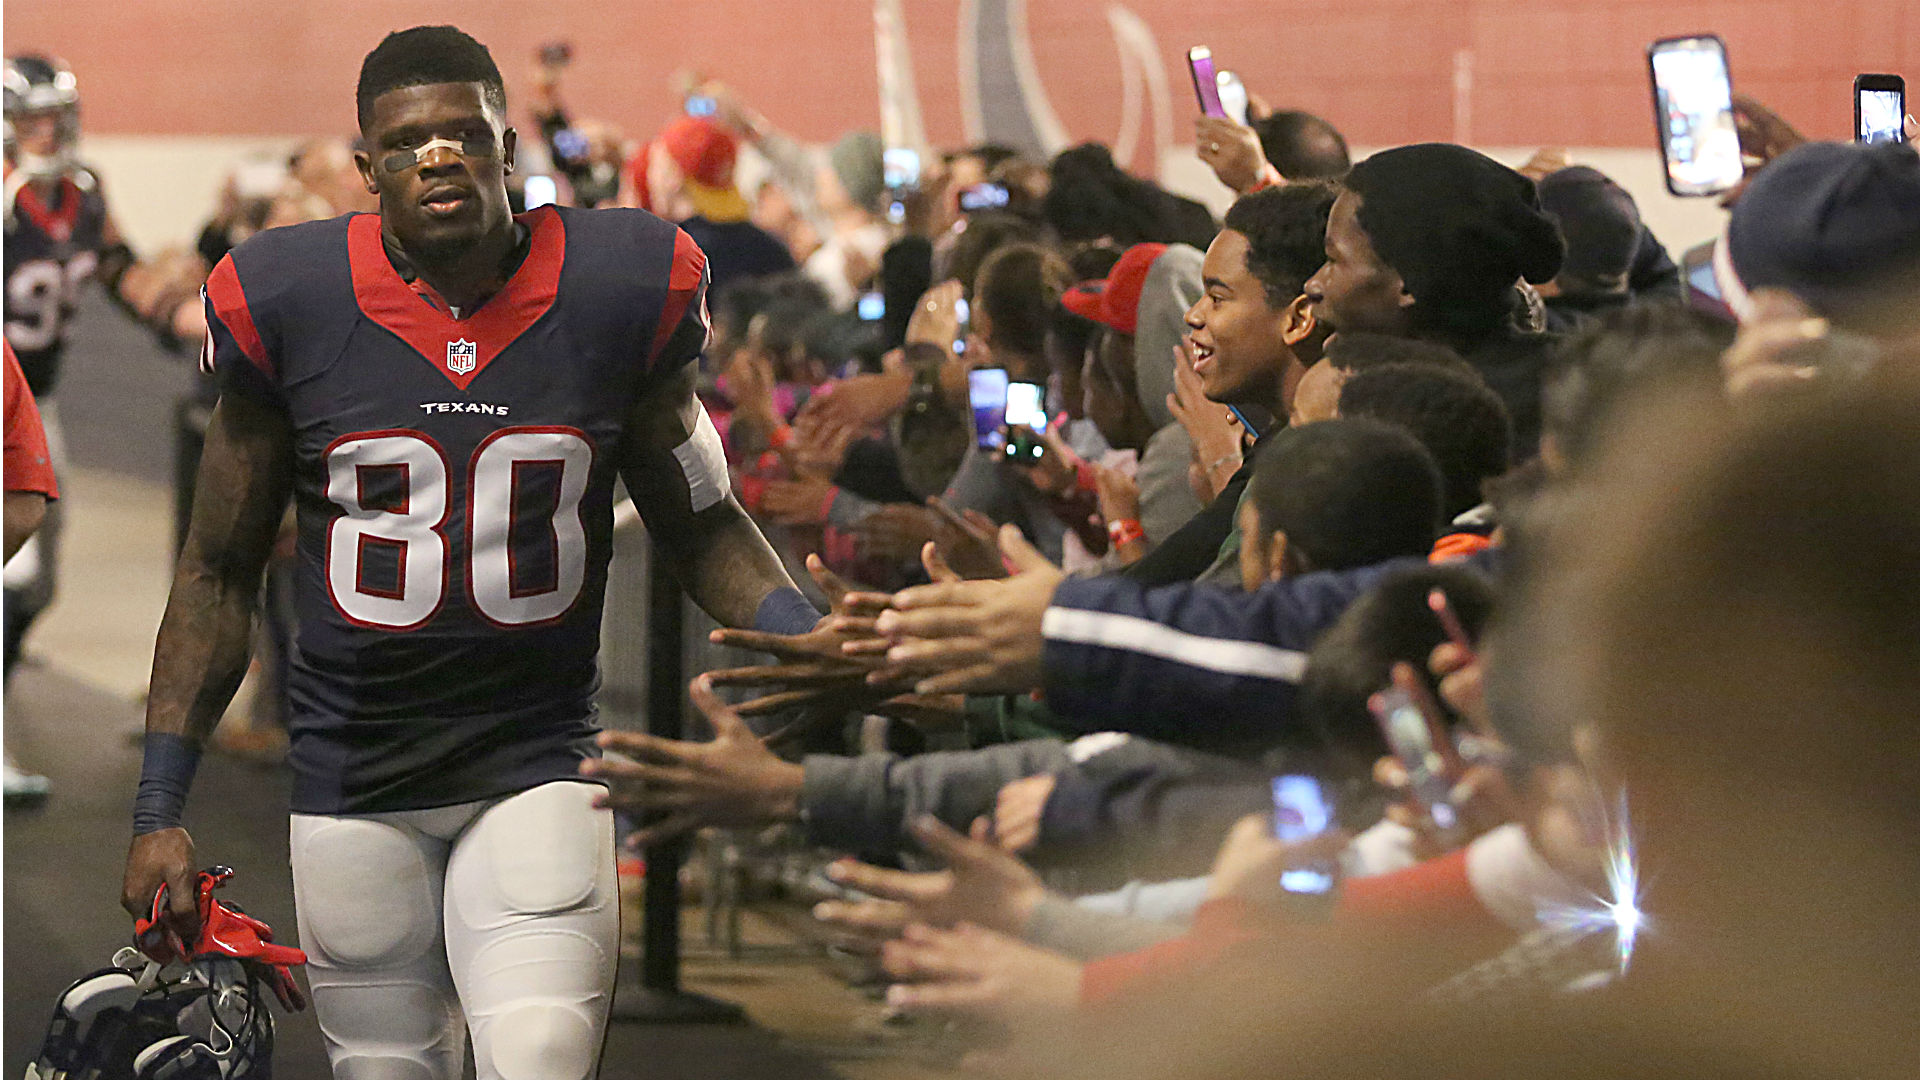 Where will Andre Johnson play next? Five teams to consider